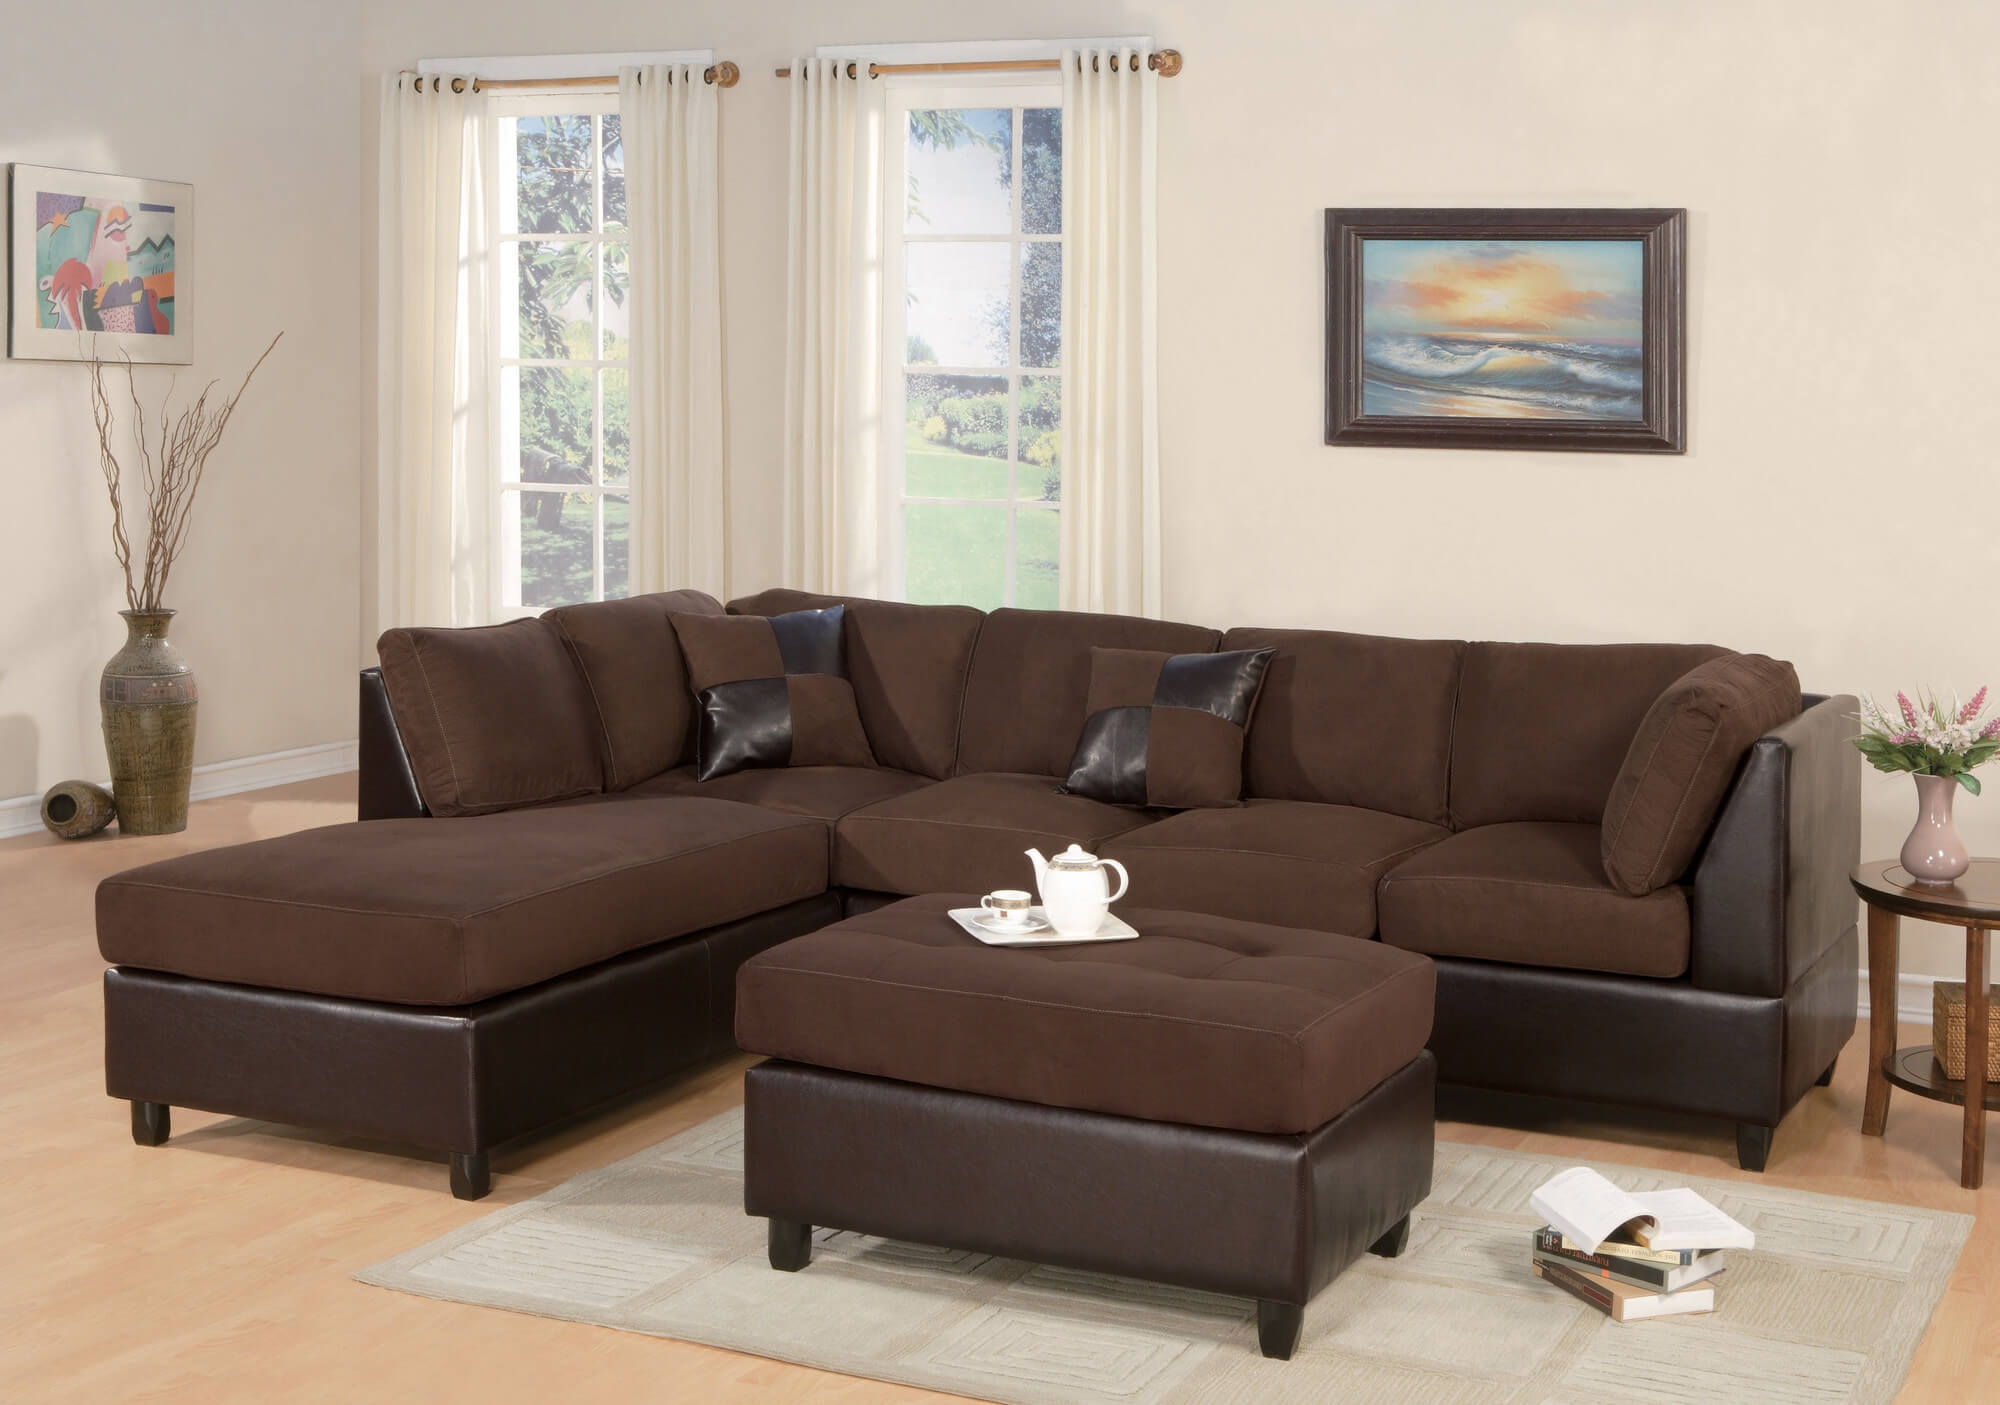 100 Beautiful Sectional Sofas Under 1000 Inside Extra Wide Sectional Sofas (View 9 of 12)